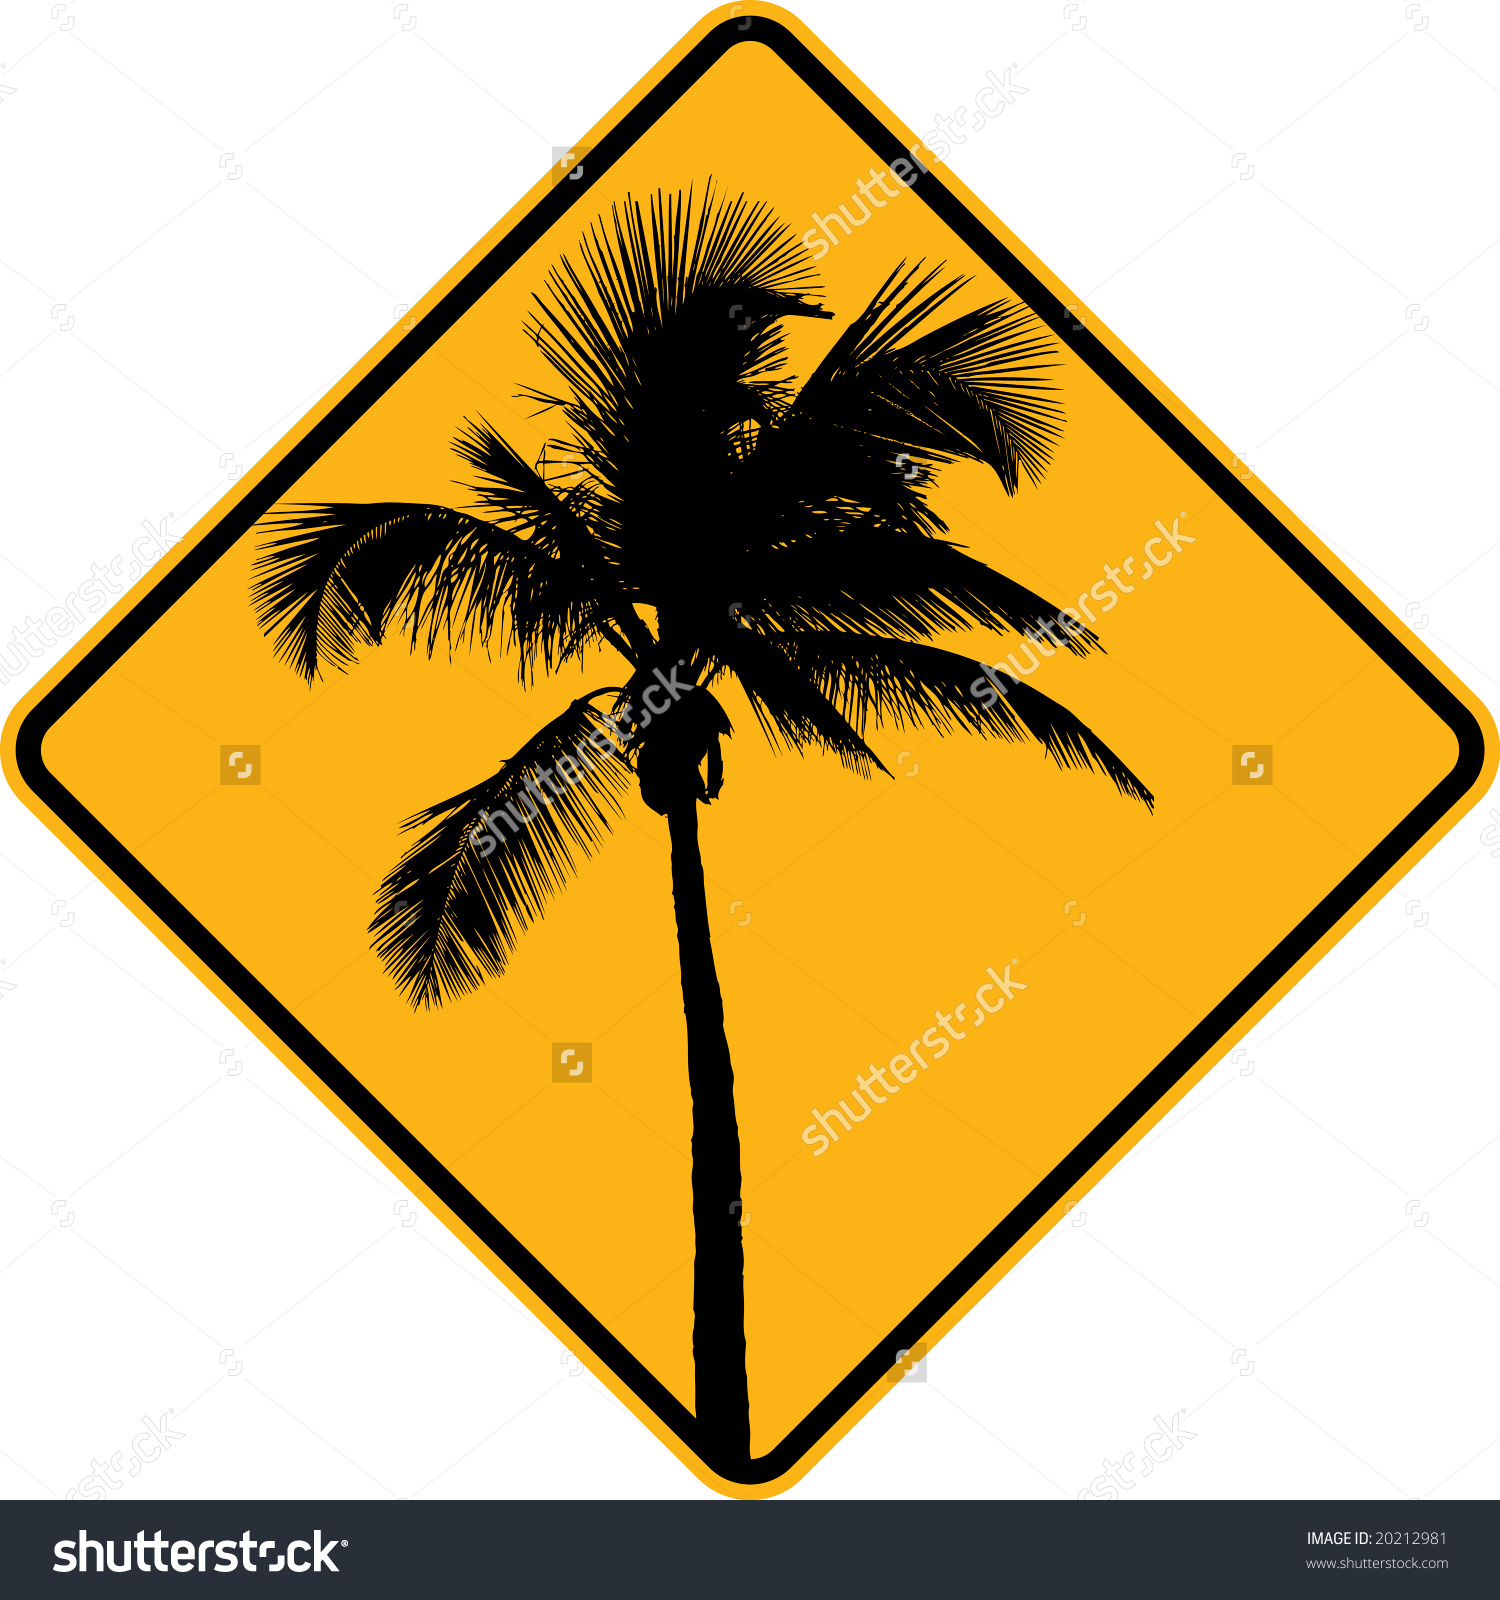 Palm Tree Sign Yellow Black Stock Vector 20212981.